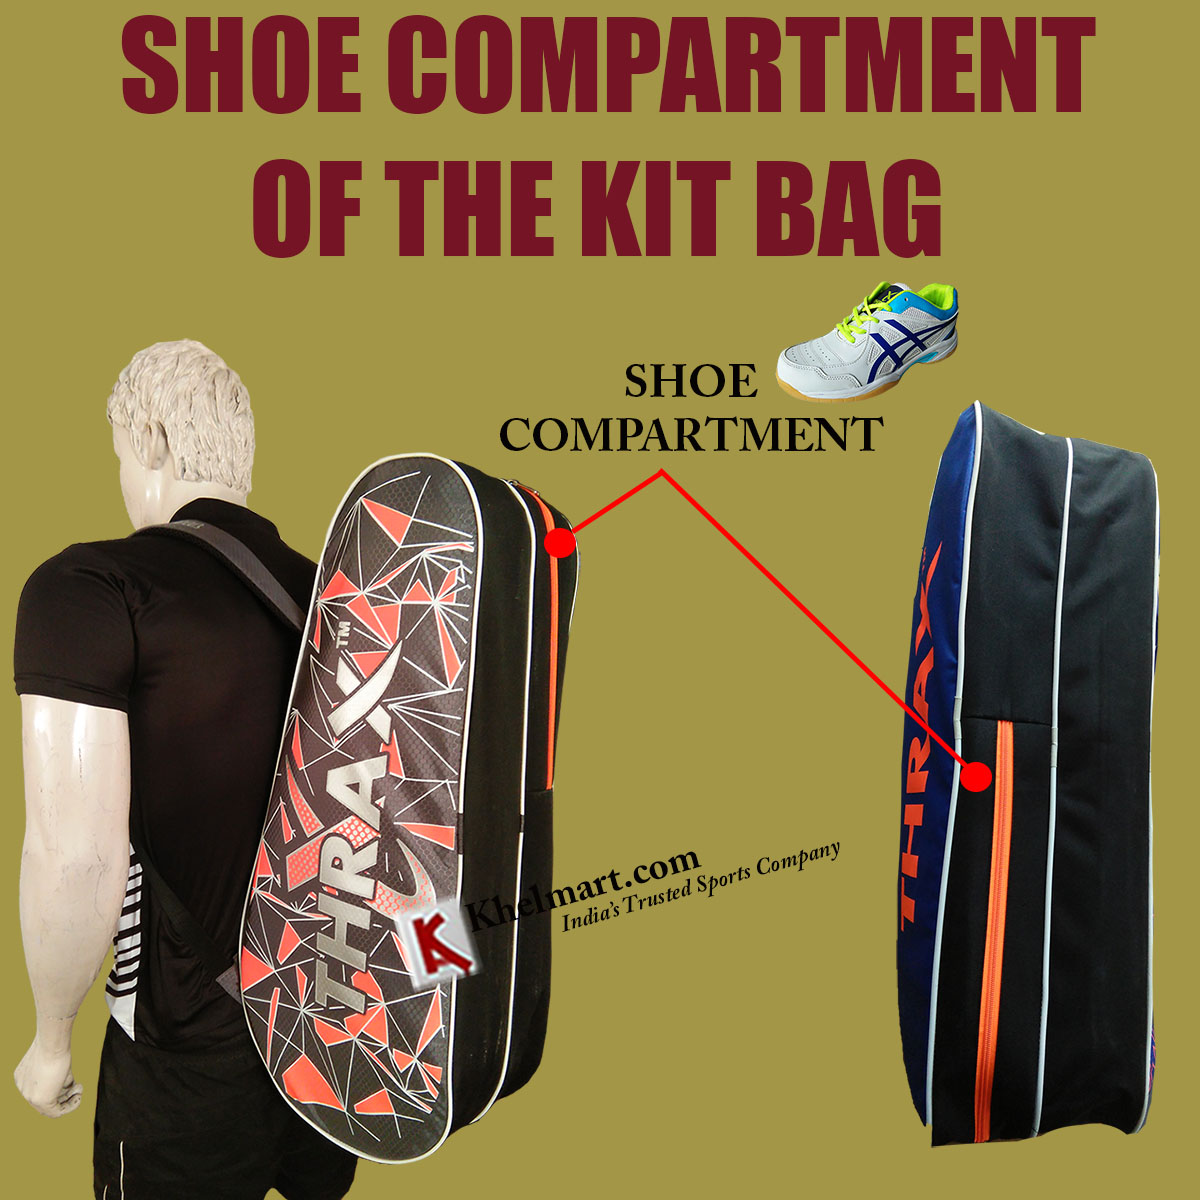 SHOE_COMPARTMENTS_OF_THE_KIT_BAG.jpg